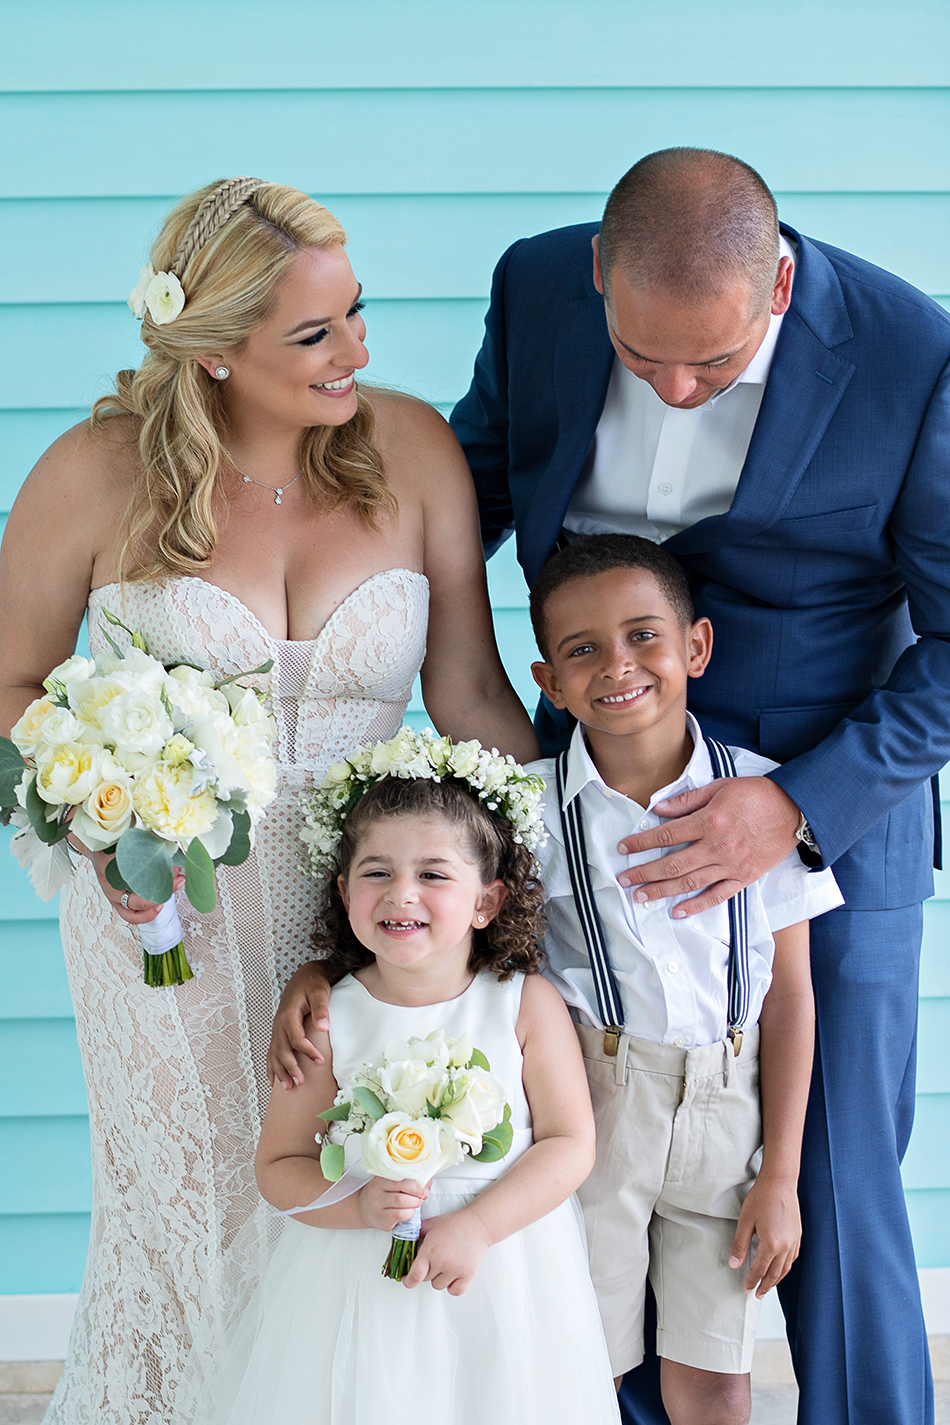 Blended family wedding photography